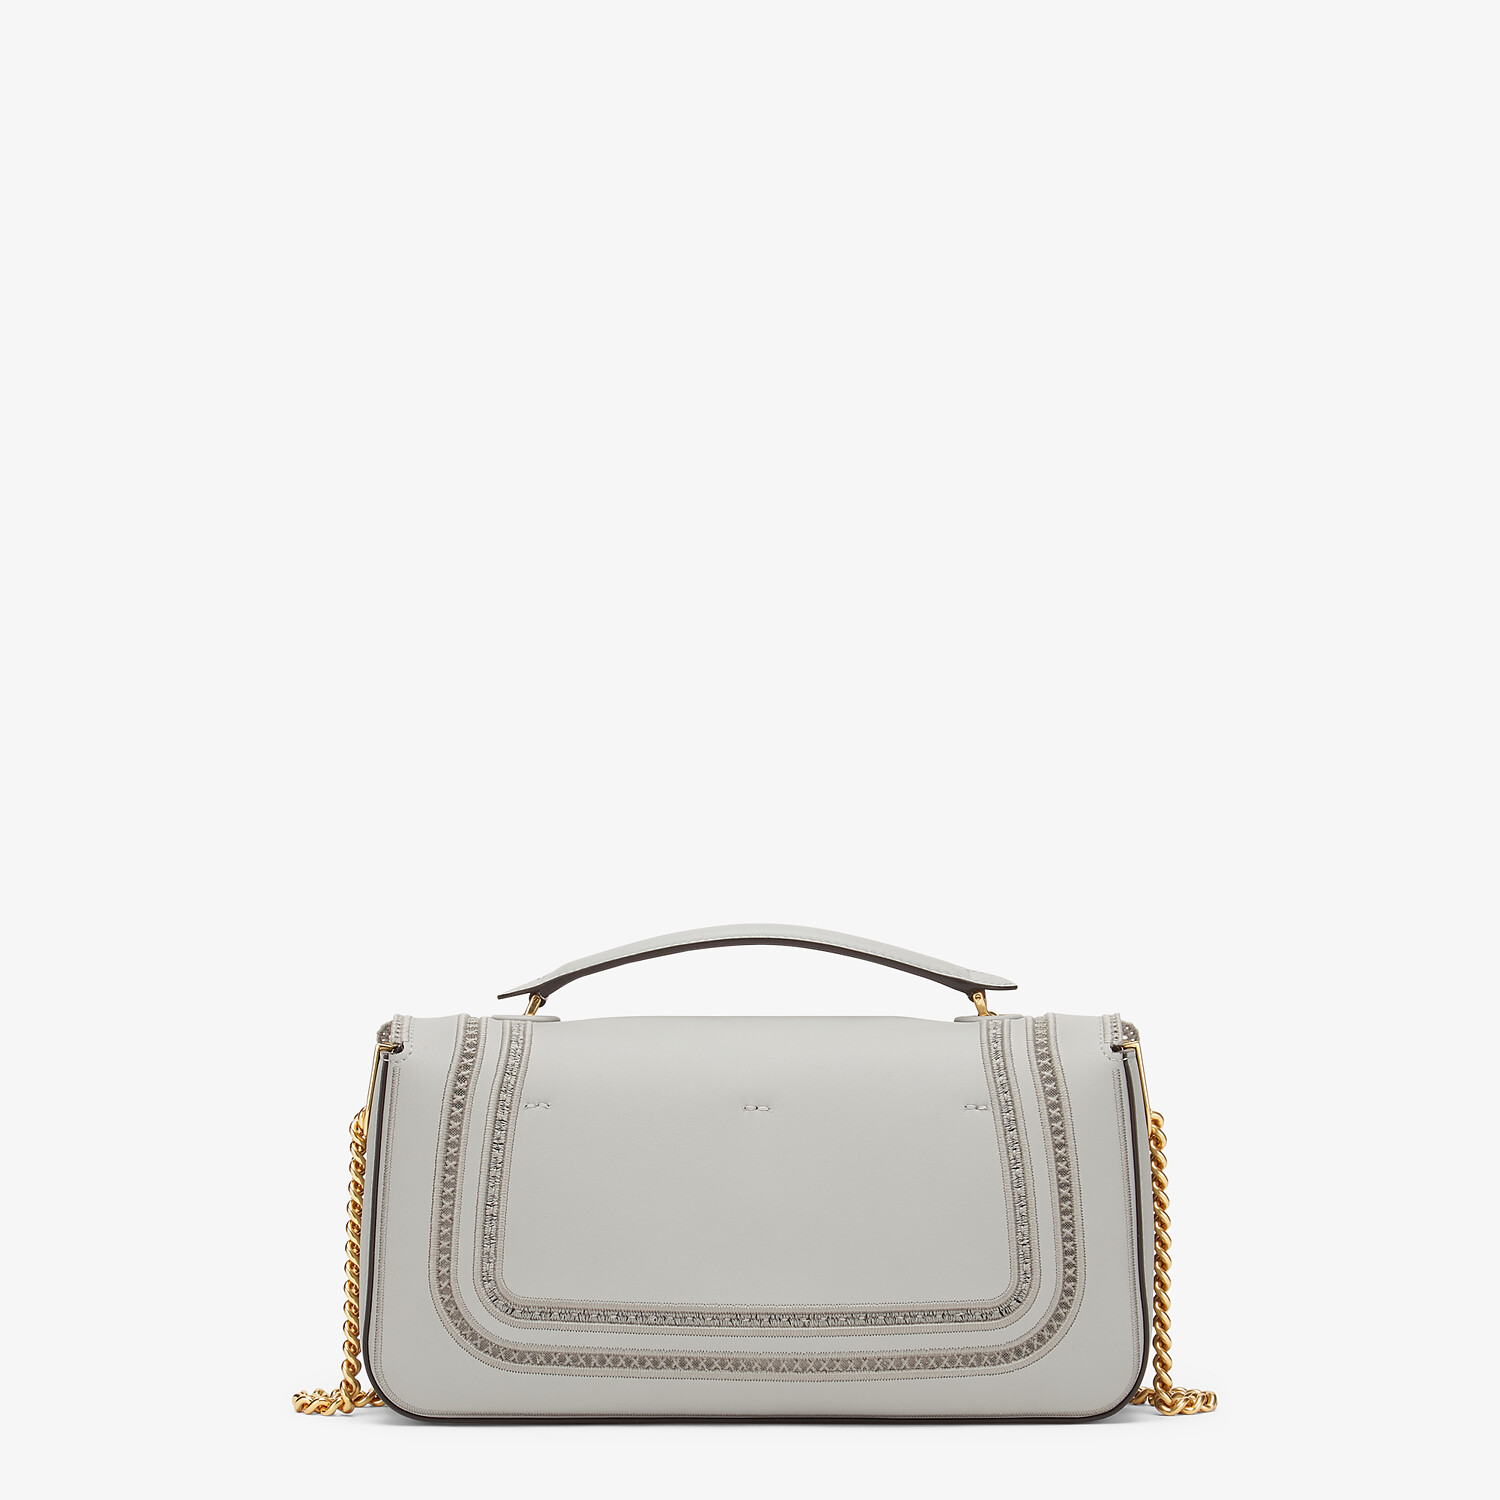 FENDI BAGUETTE CHAIN - Embroidered gray leather bag - view 3 detail